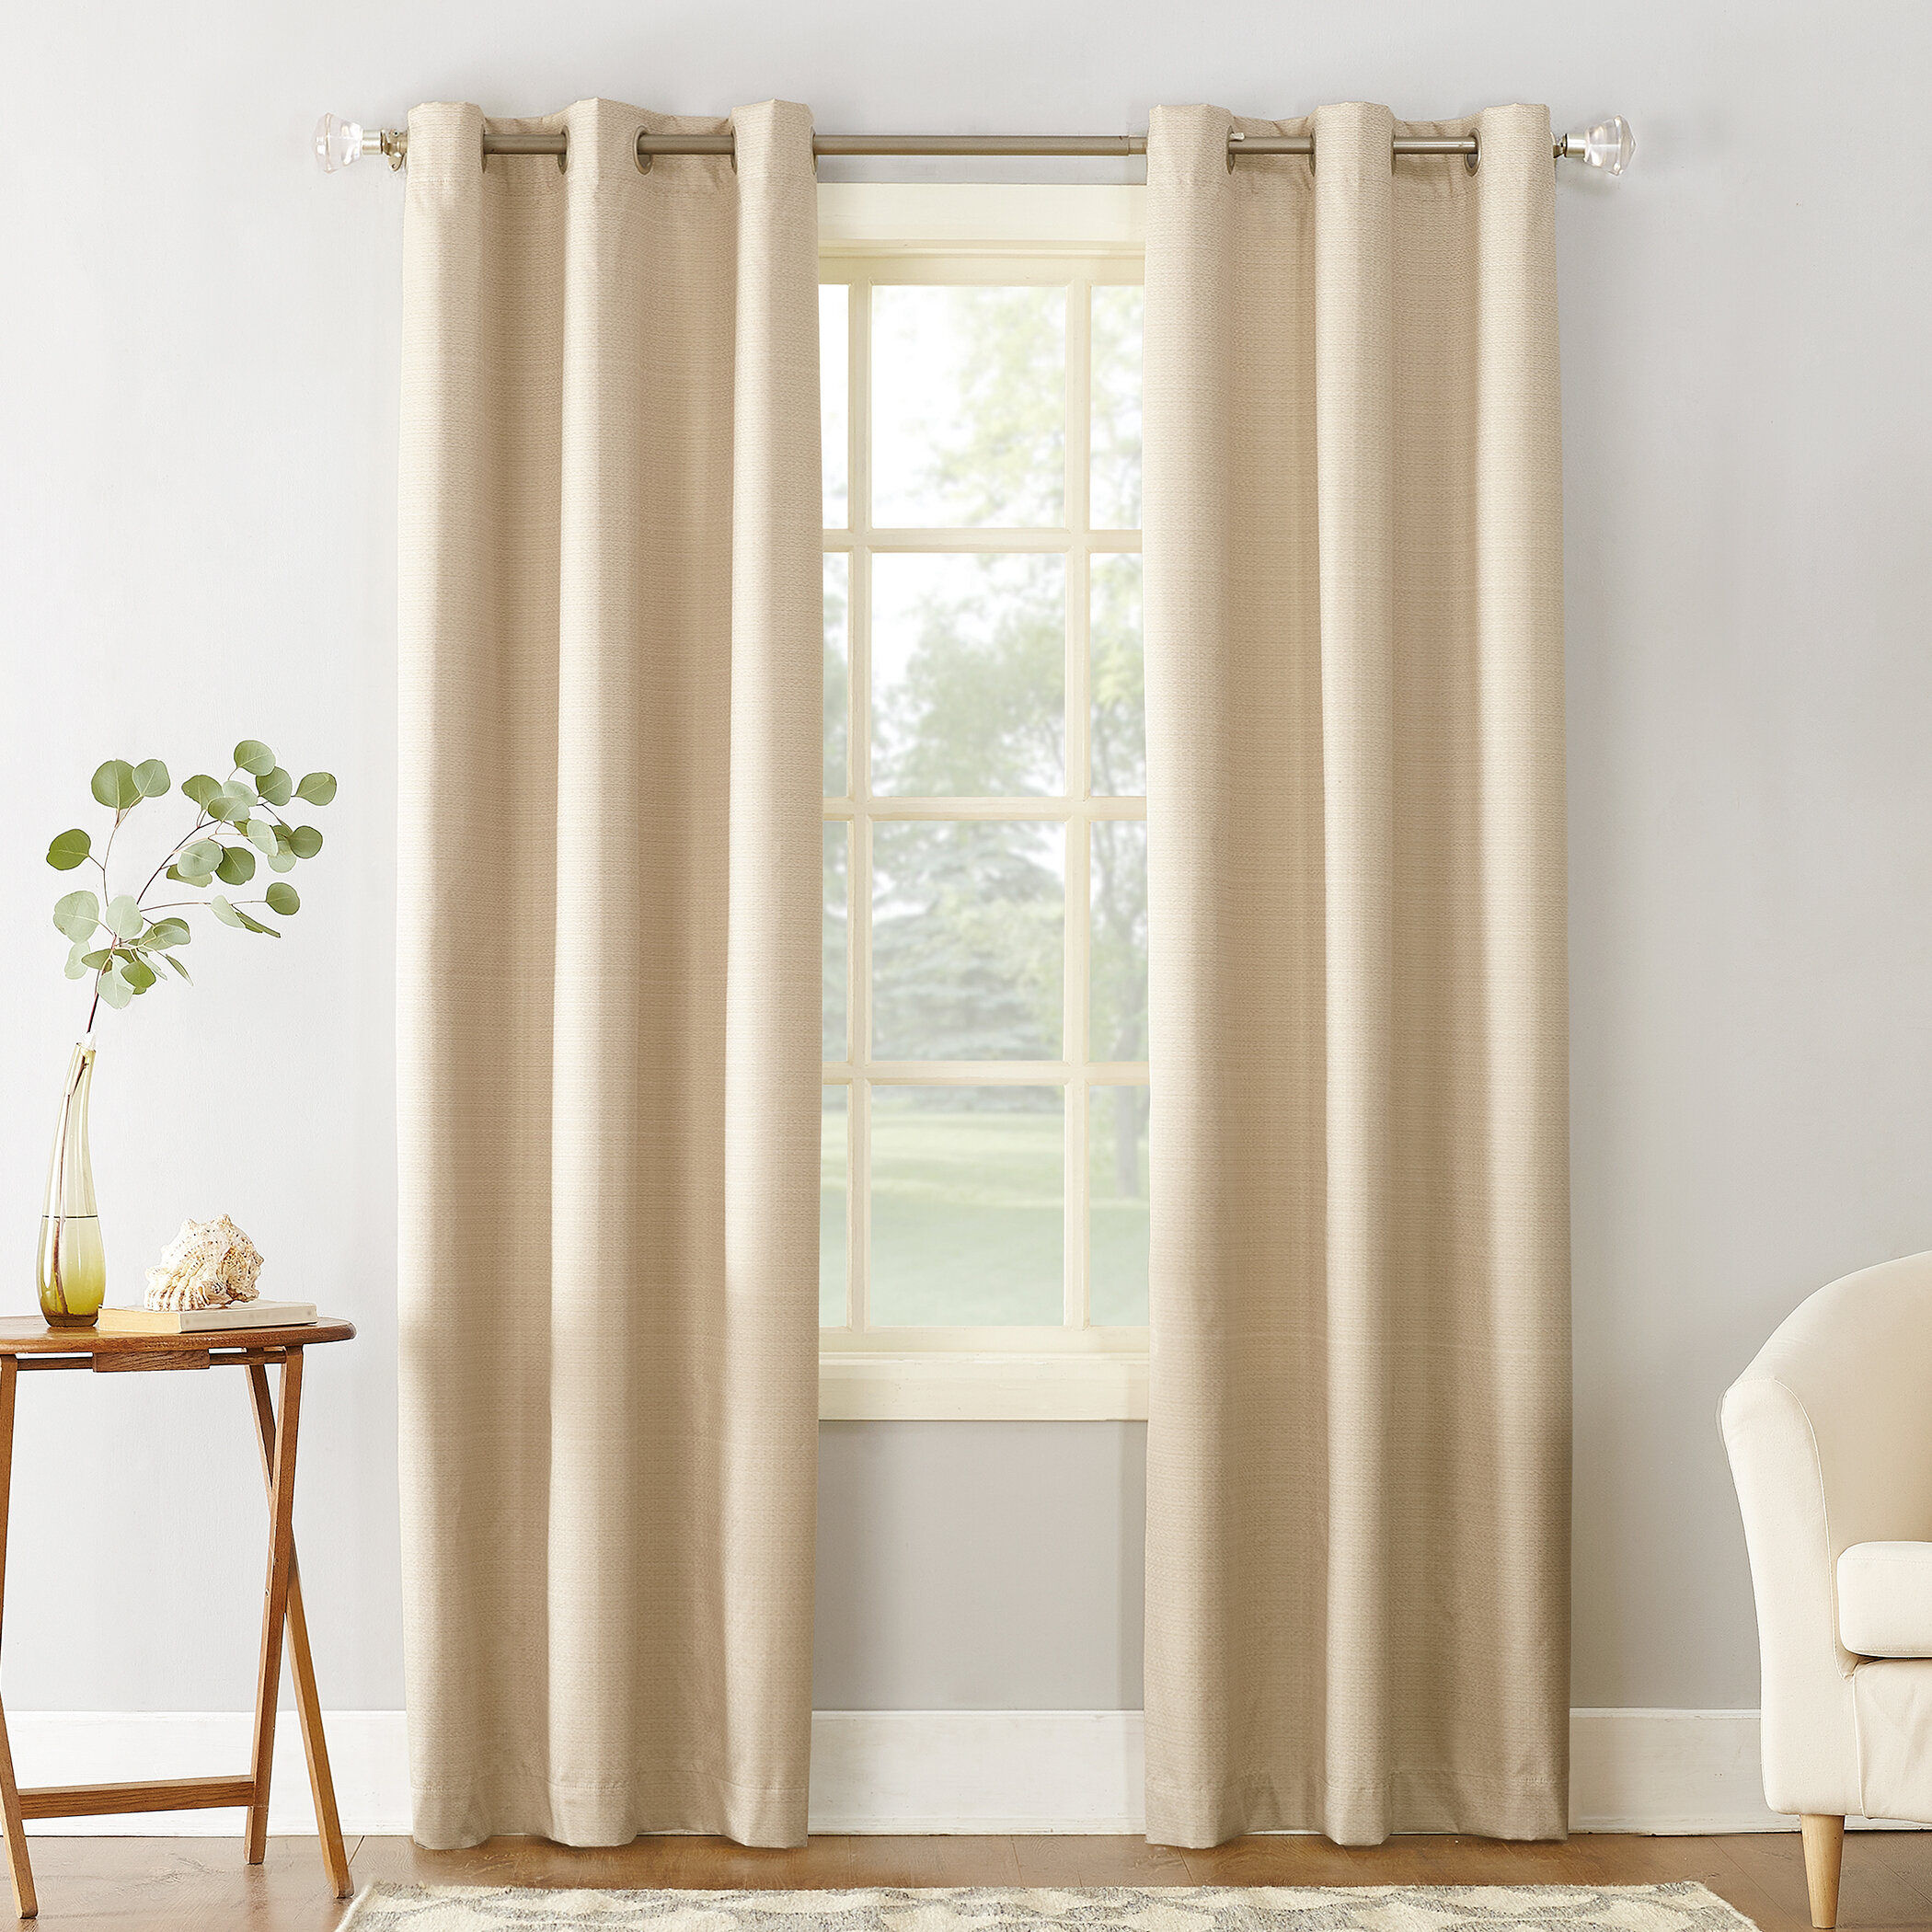 panels blackout curtain rod room bamboo insulated texture living product pocket embossed for leaf curtains pattern thermal